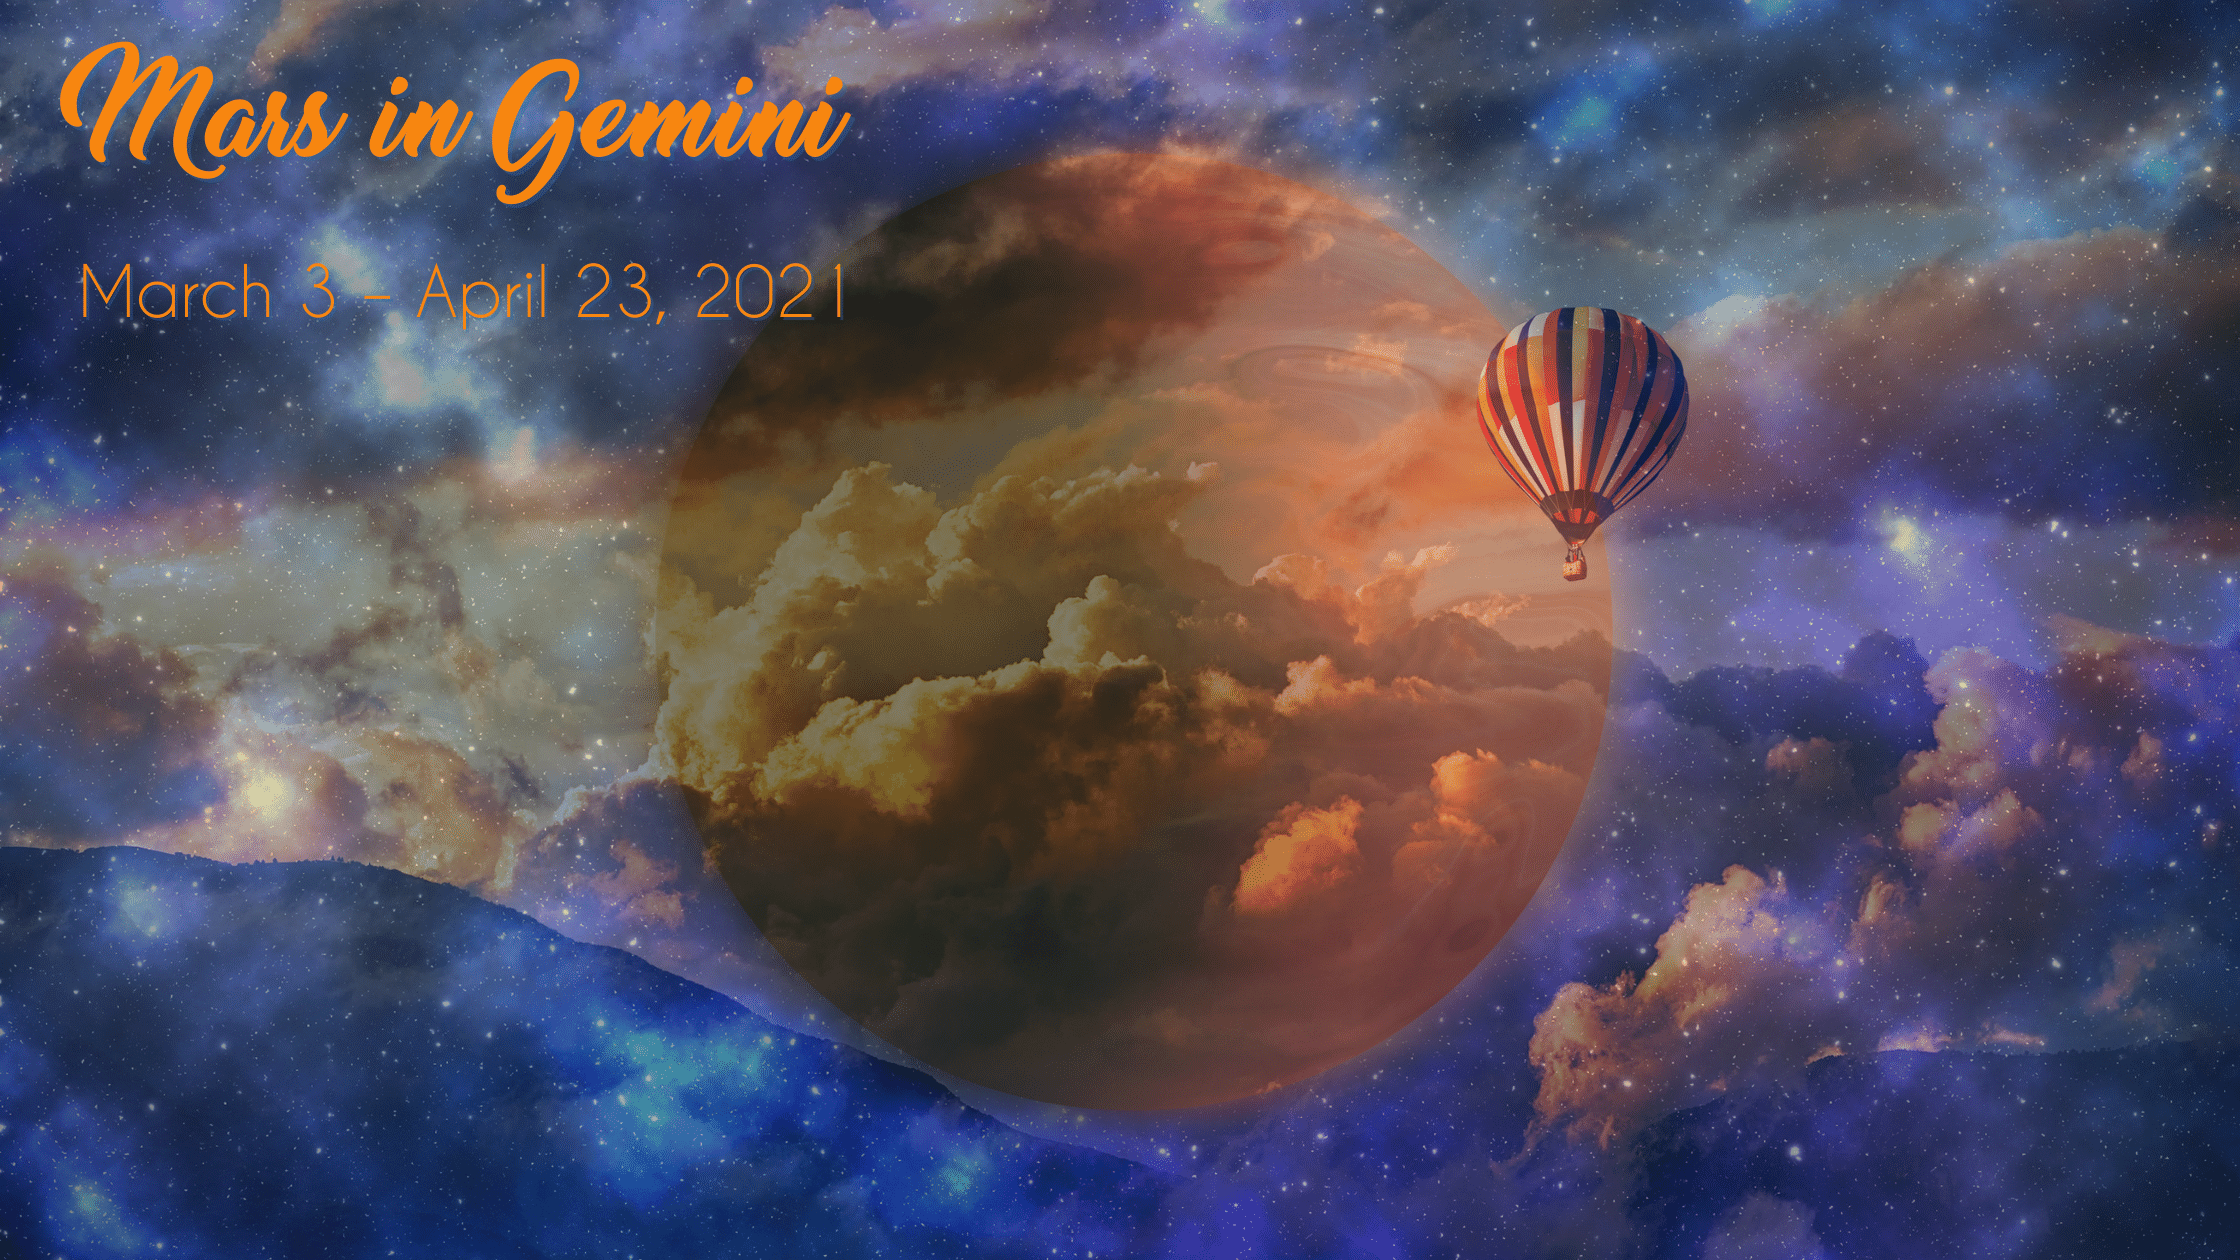 Mars in Gemini – March 3 – April 23, 2021